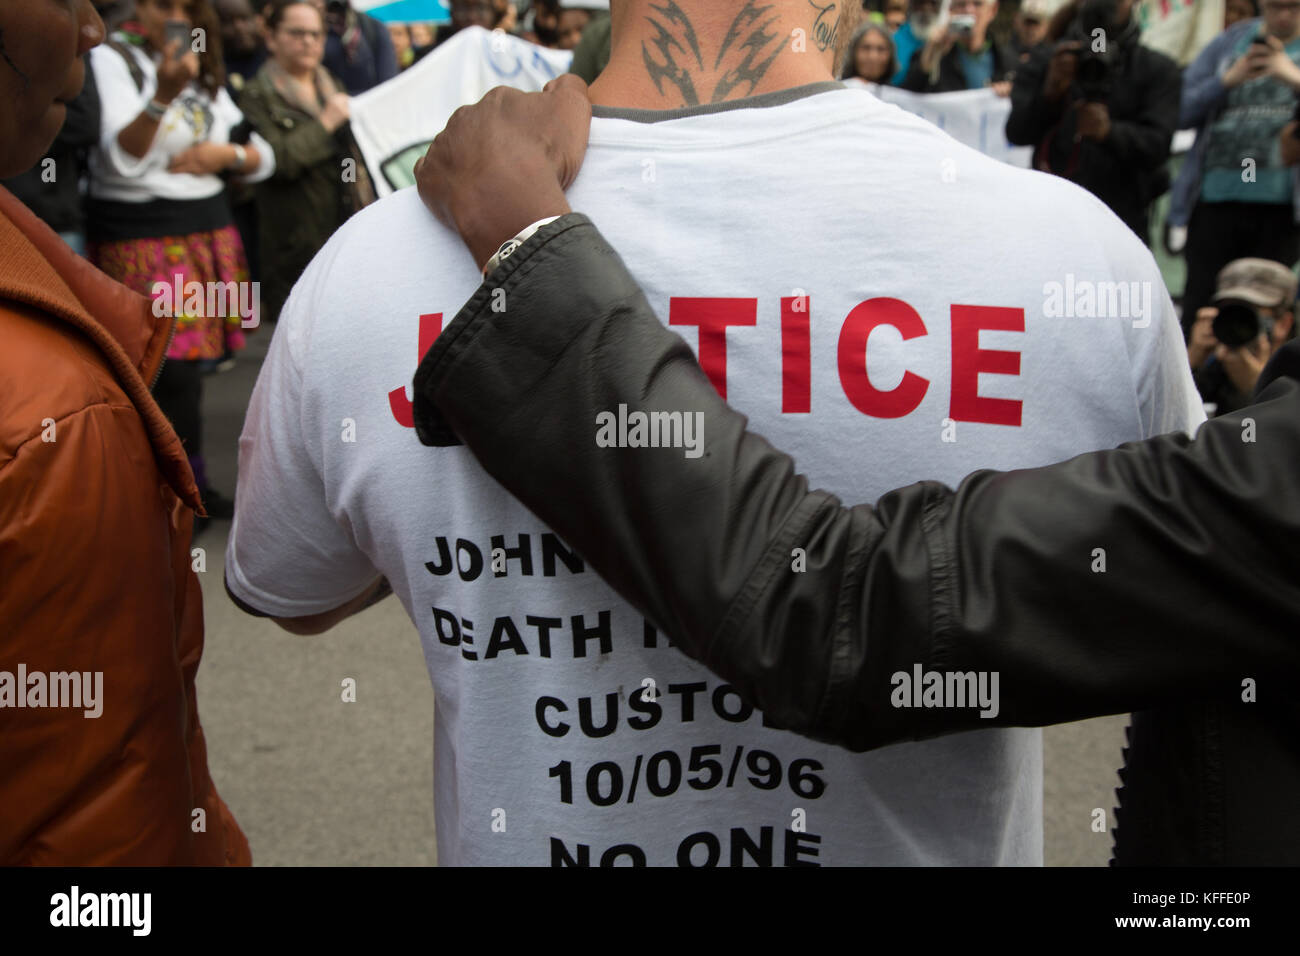 London, UK. 28th Oct, 2017. Demonstration to remember those who have died in police custody. Credit: Thabo Jaiyesimi/Alamy - Stock Image